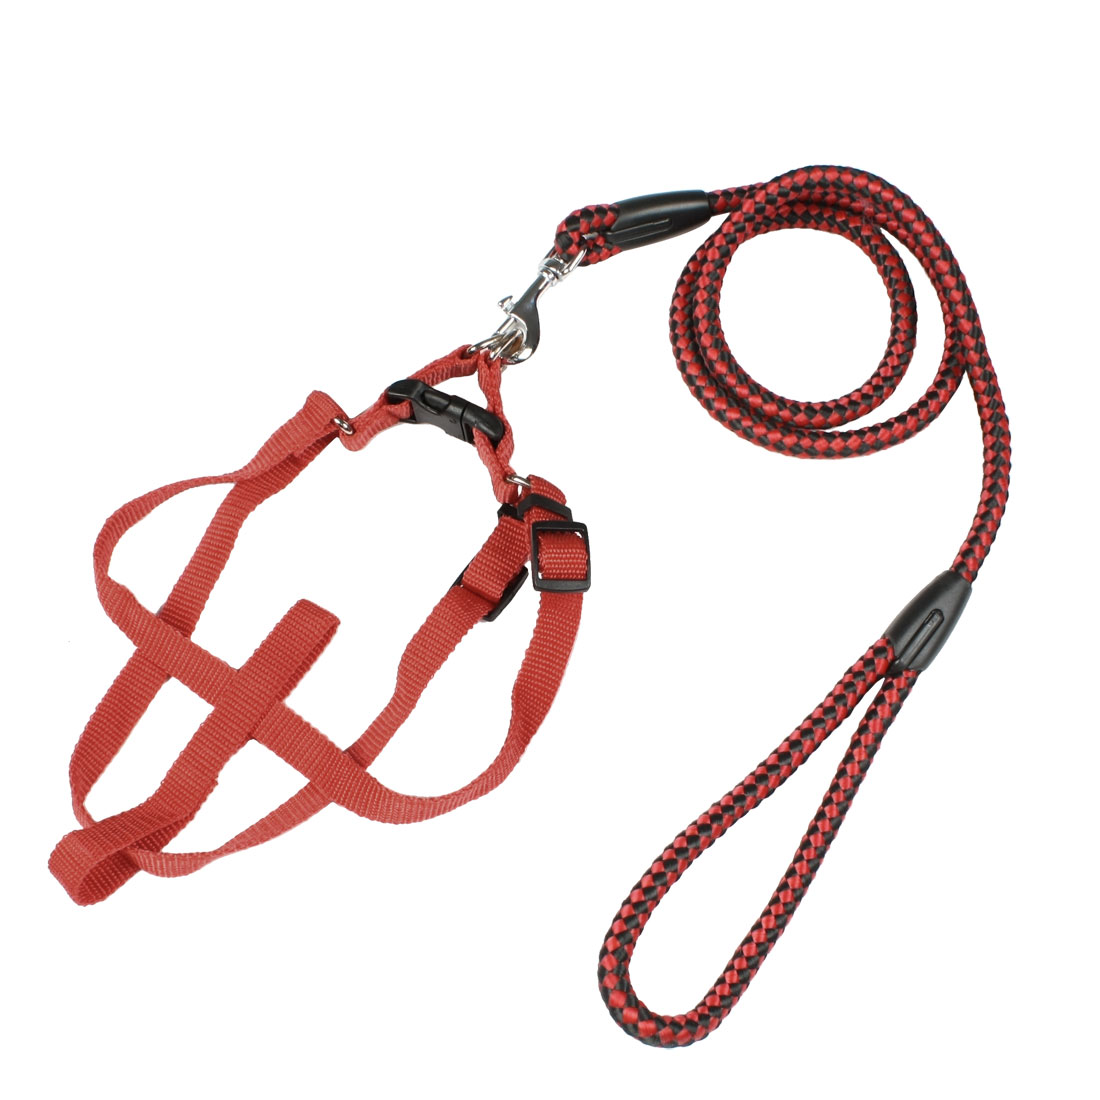 Red Black Braided Nylon Pet Dog Collar Halter Harness Lead Leash 1.14M